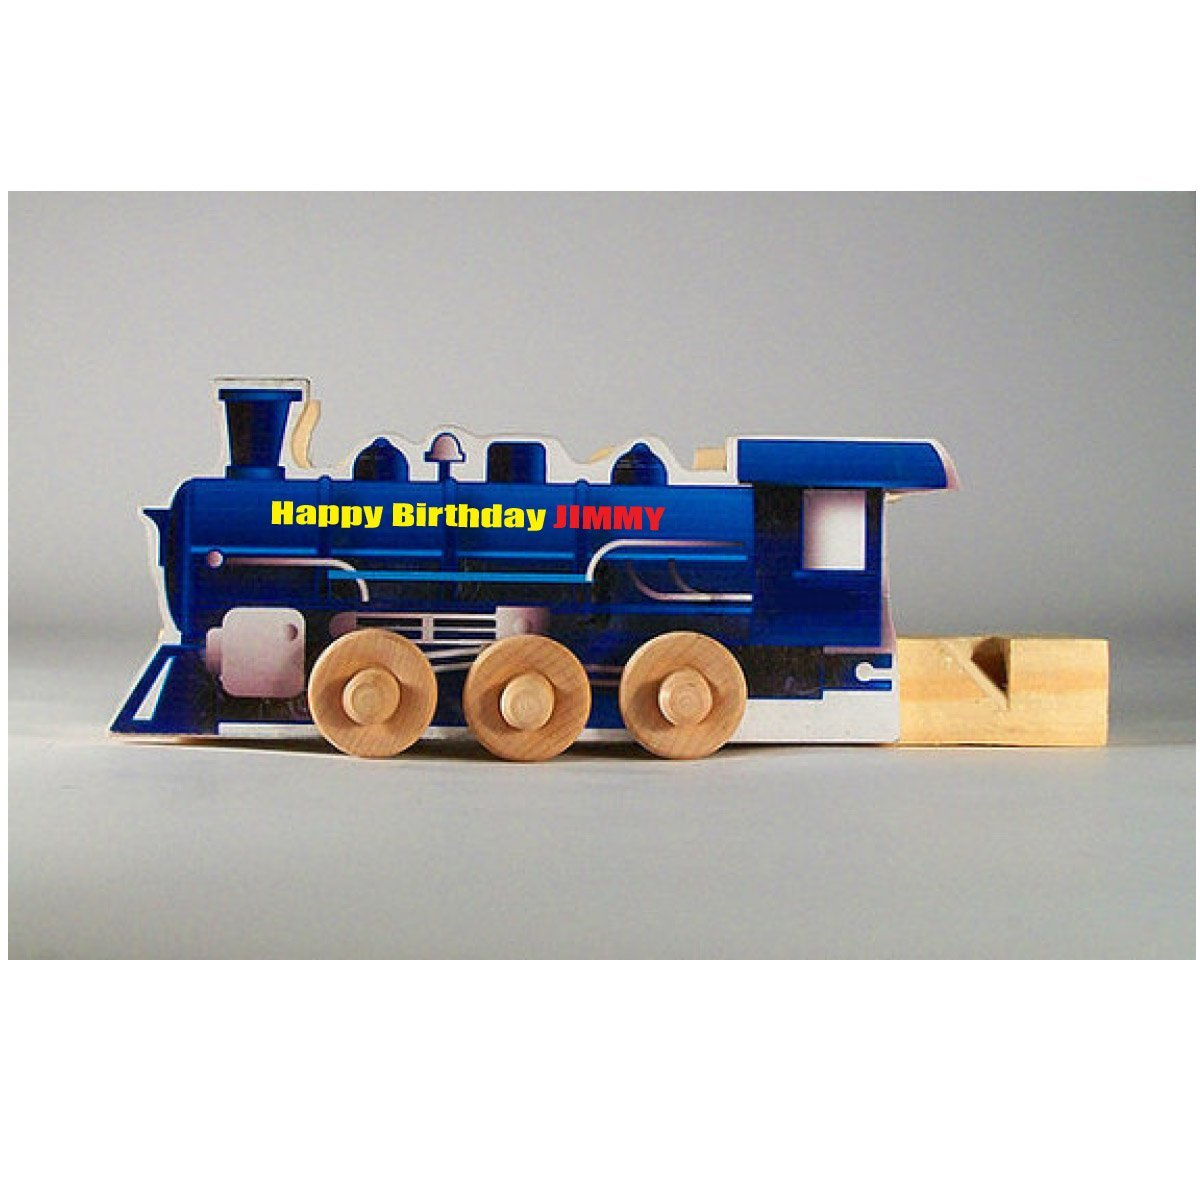 Personalized Wooden Train Whistle